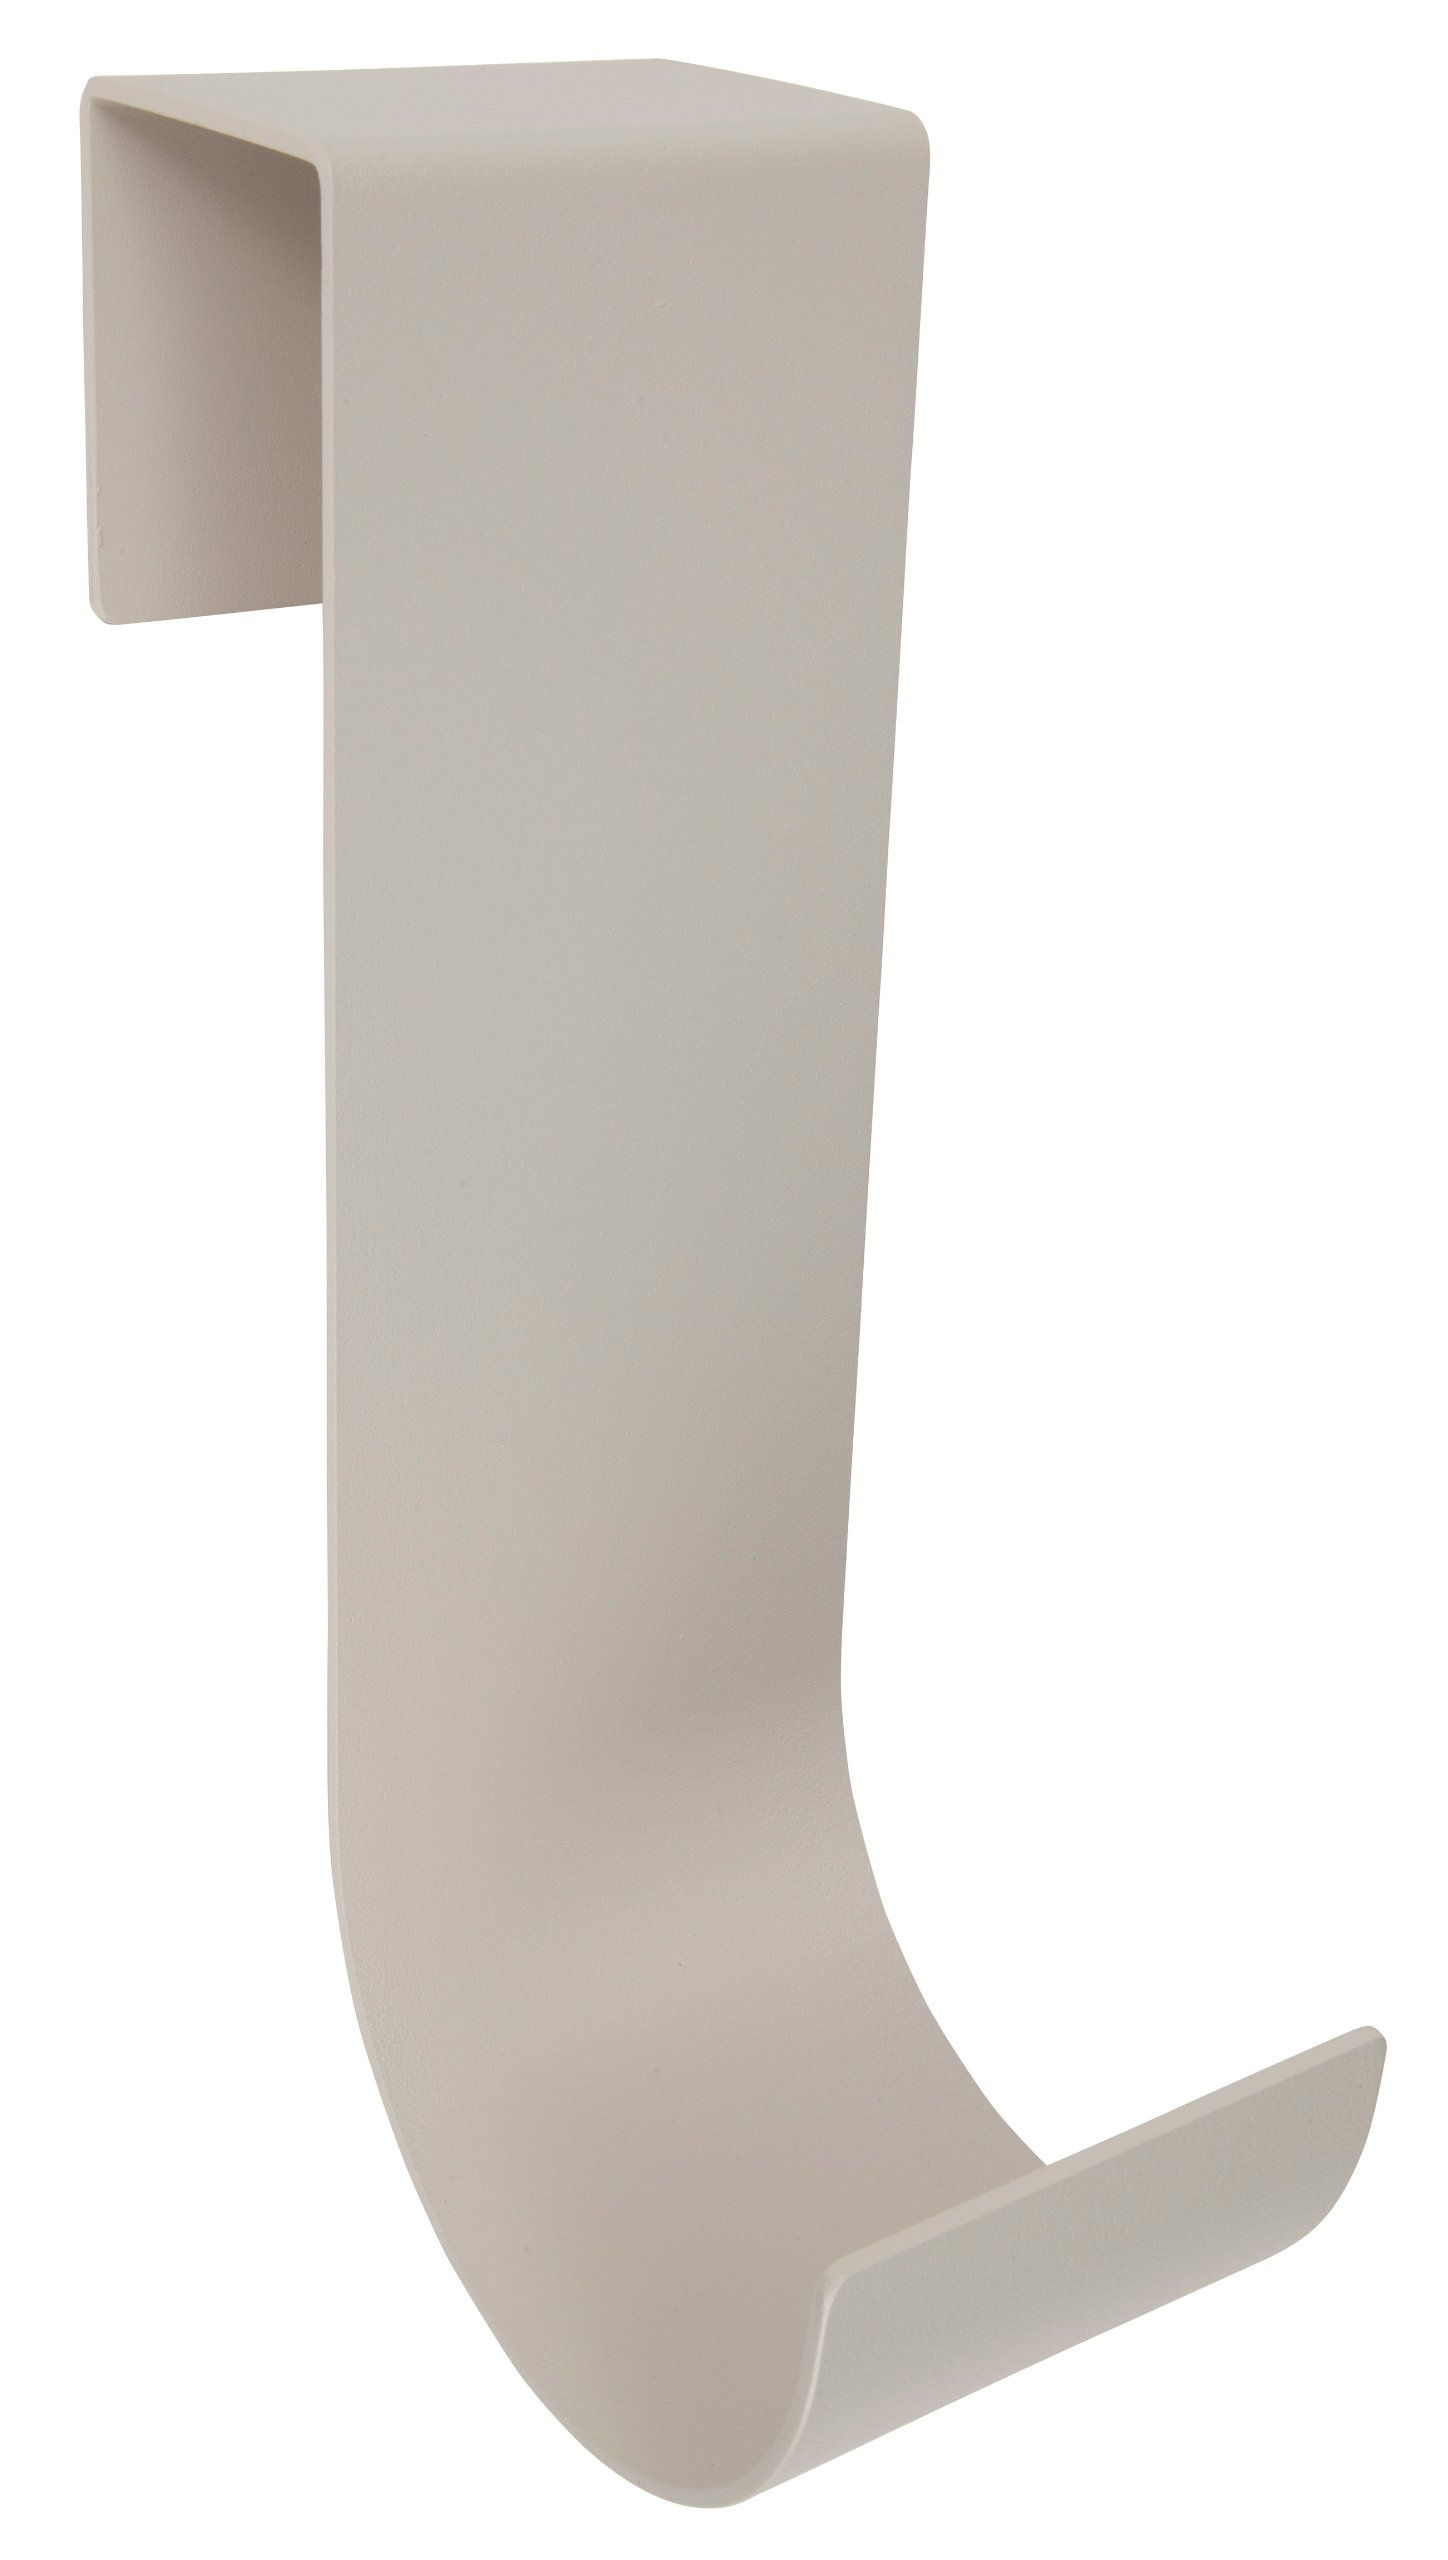 MIDE Products 2310T-2 Aluminum Pool Accessory Hooks Pair, Fits 1-3/4-Inch to 2-1/8-Inch Wide Fences, 10-Inch Long, Tan/Beige